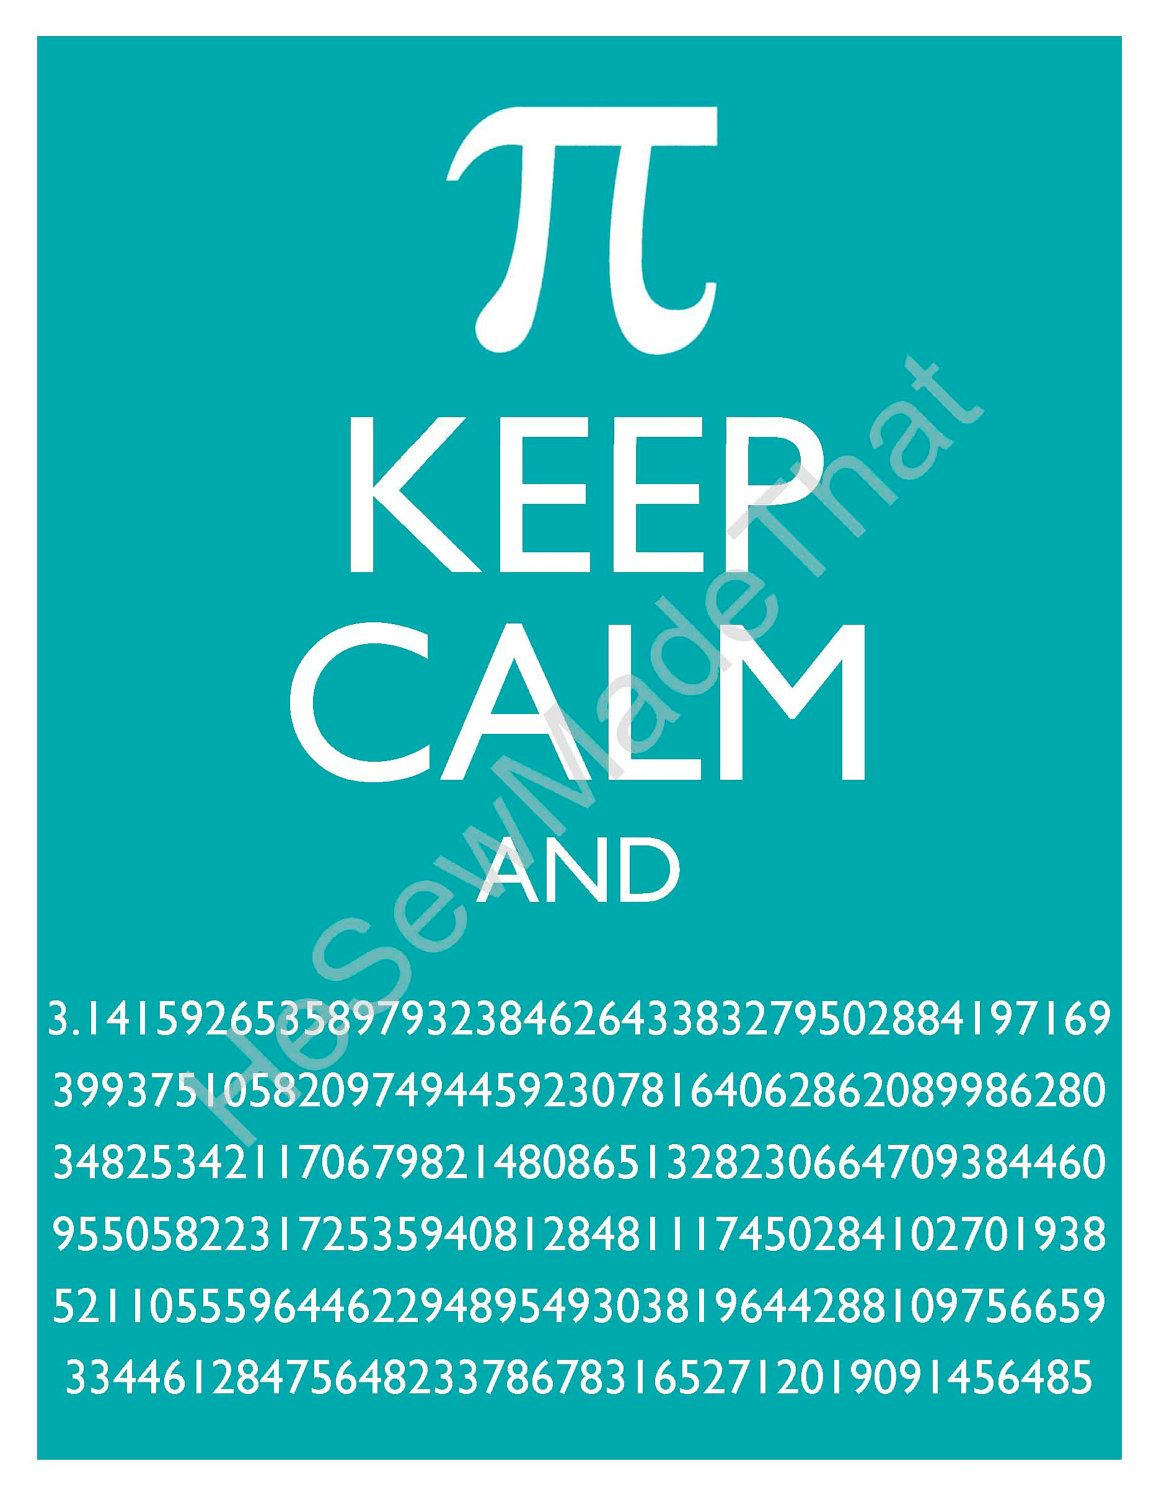 keep calm and pi - 8x10 picture - wall hanging - 3.14 math geekery